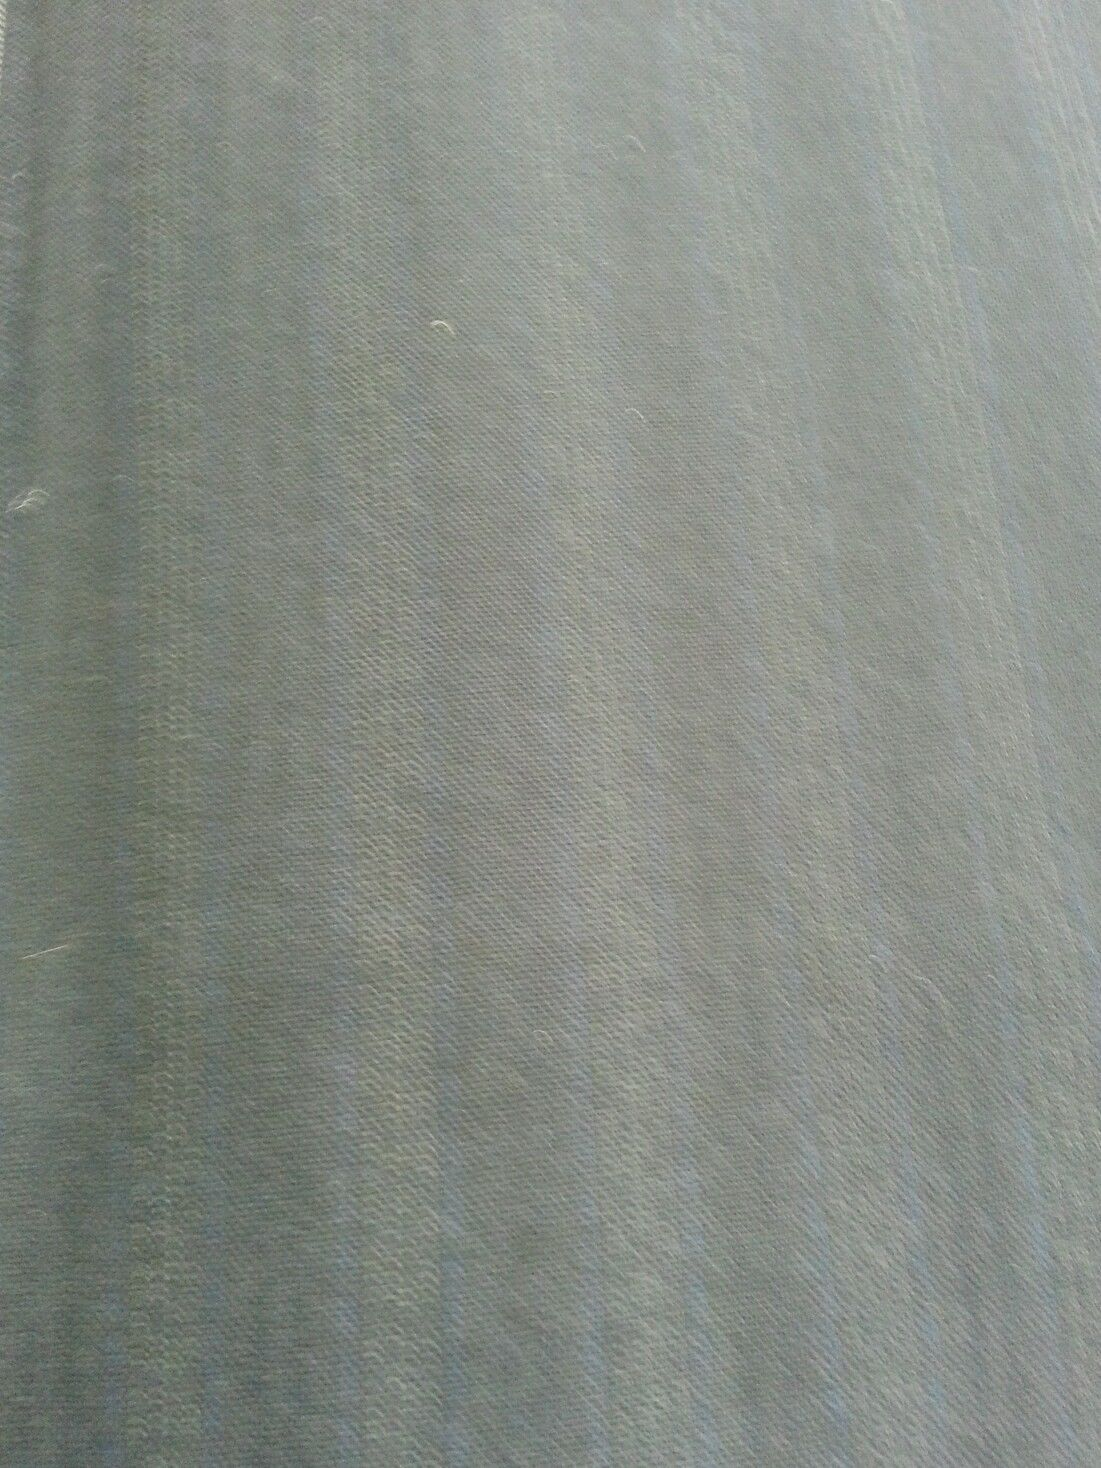 4 Yard Super 100's Wool BEAUTIFUL NAVY  STRIPE Worsted Suit Fabric  MSRP $525